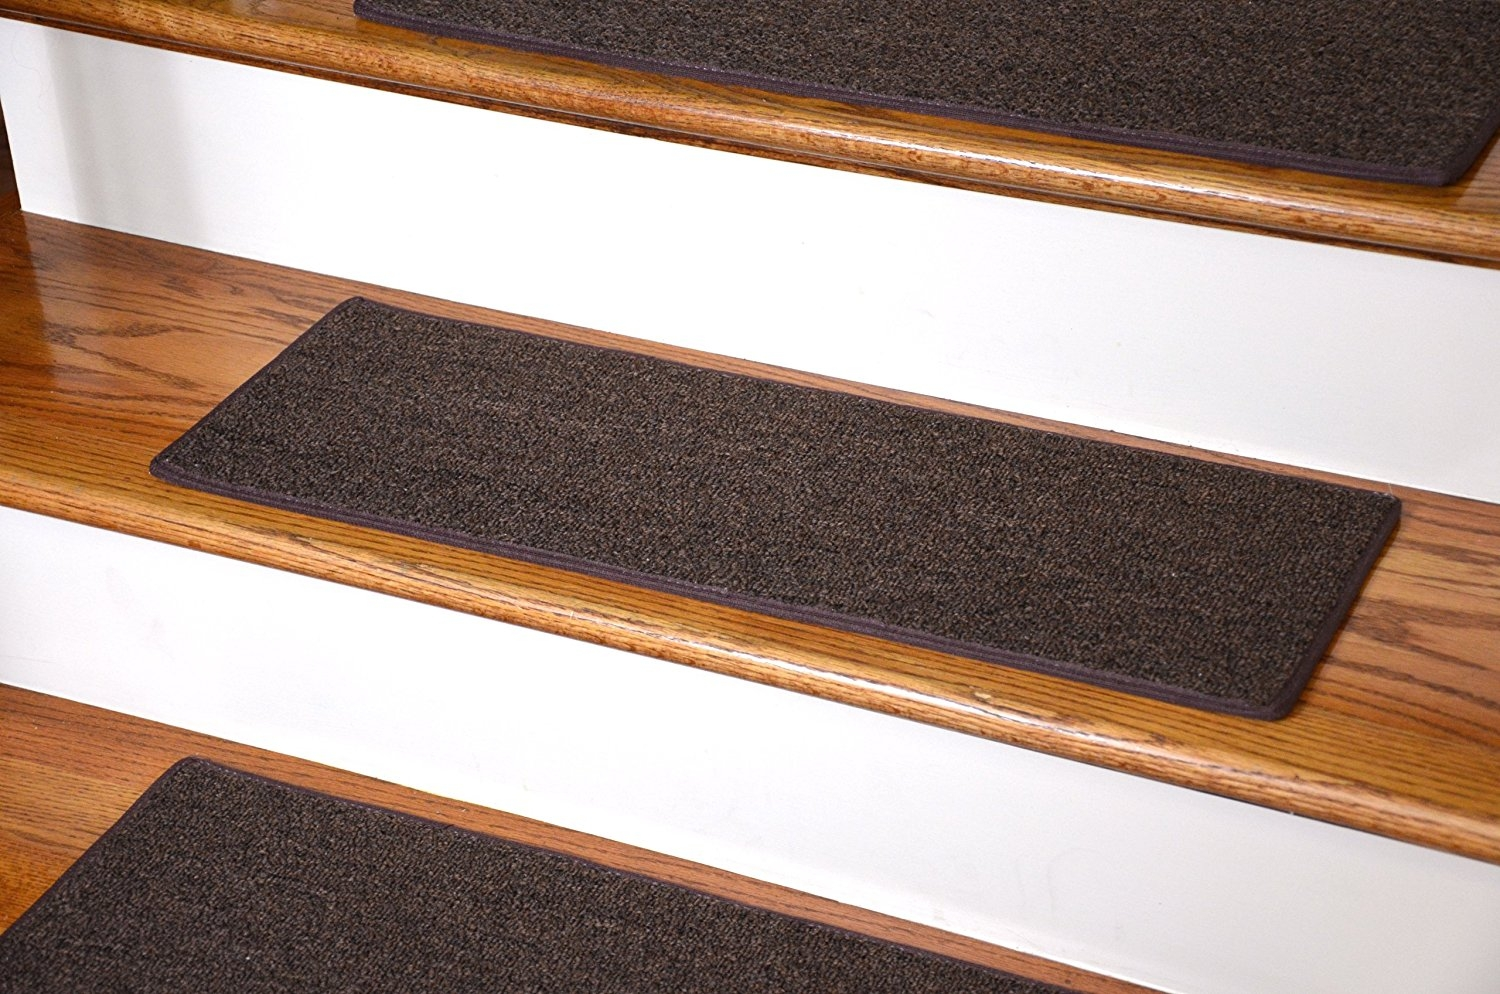 Dean Non Slip Tape Free Pet Friendly Diy Carpet Stair Treadsrugs With Regard To Non Slip Stair Treads Carpets (#4 of 20)